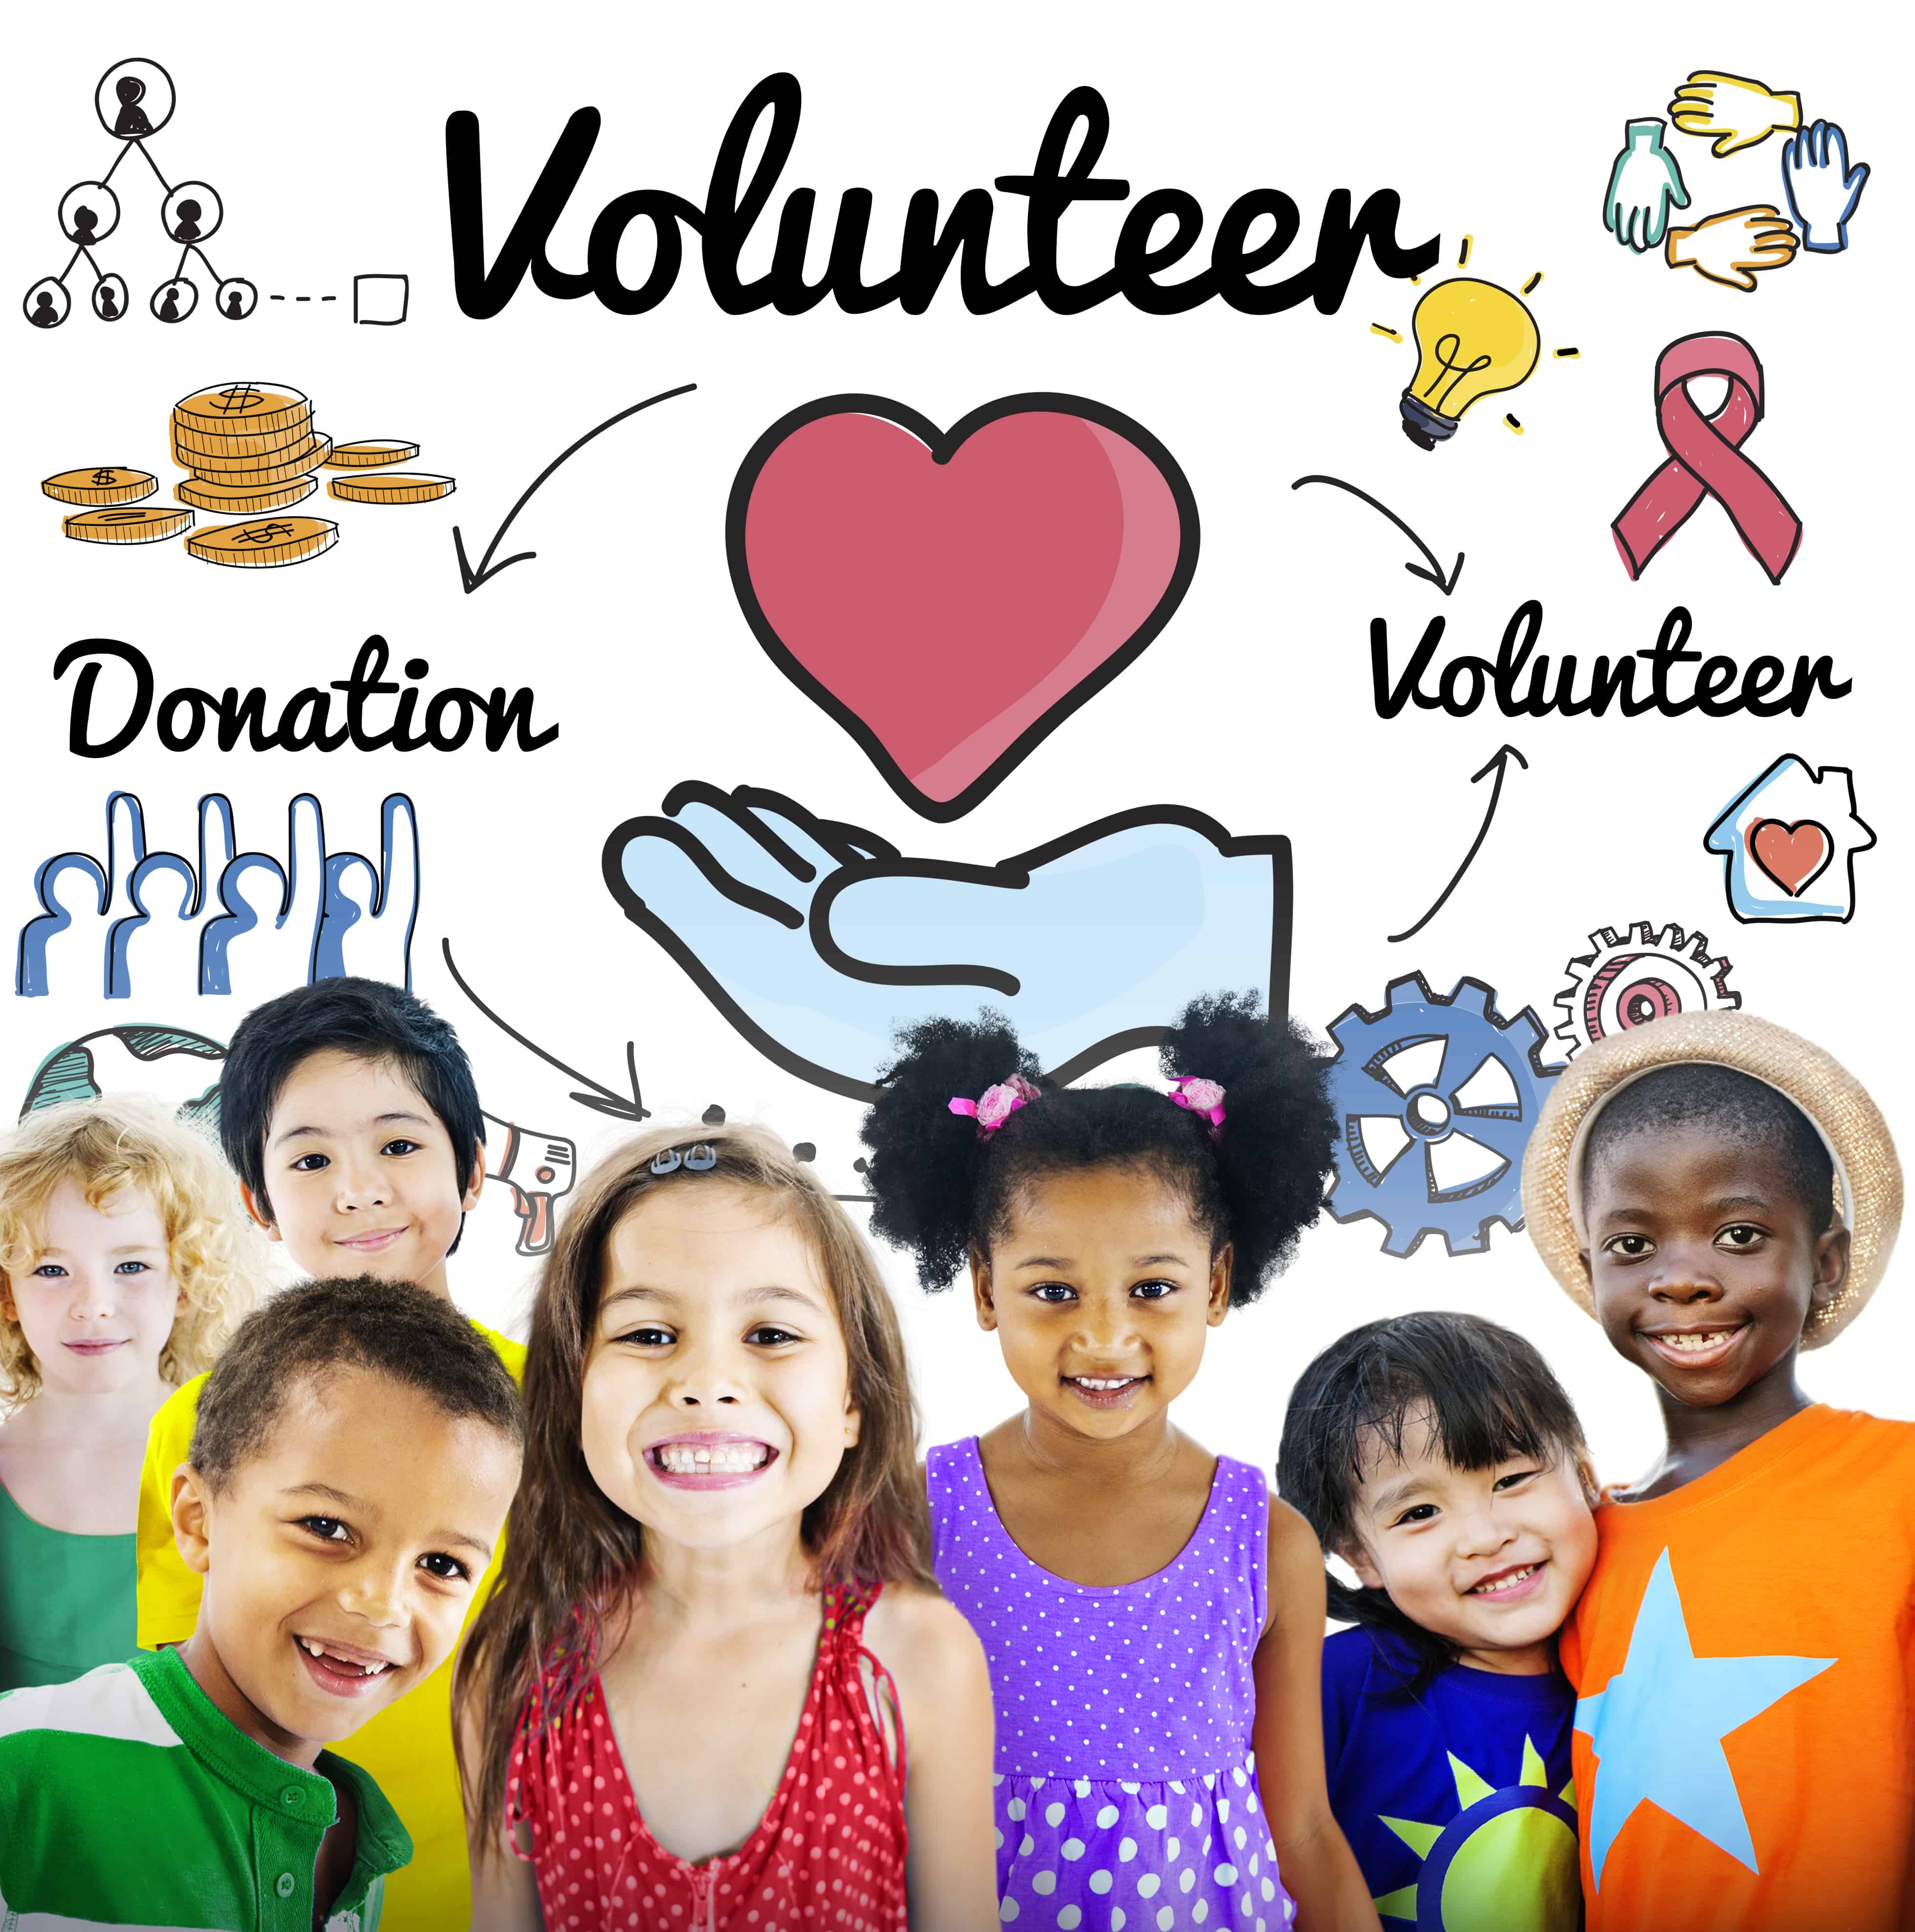 In the spirit of the holidays, here are a number of ways for kids to get involved and give back to others from giving money to giving time and energy.